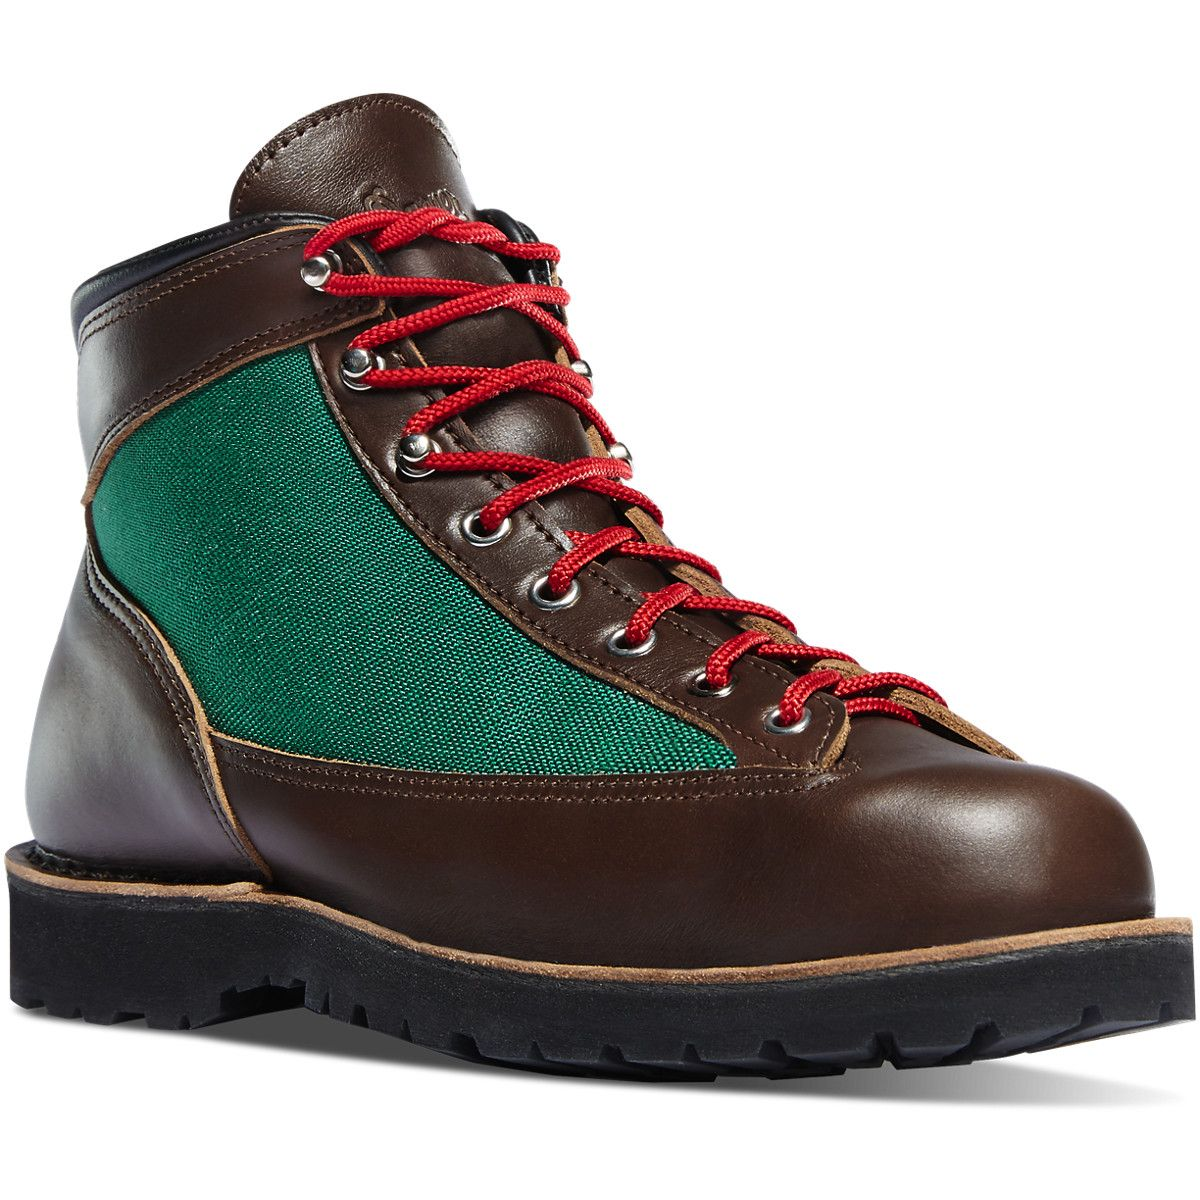 USA Crafted The Danner Ridge Dark Brown is a new style and a collaboration boot with Topo Designs. It has a waterproof and breathable GORE-TEX® liner, which is engineered to keep your feet dry and comfortable even in extreme conditions.